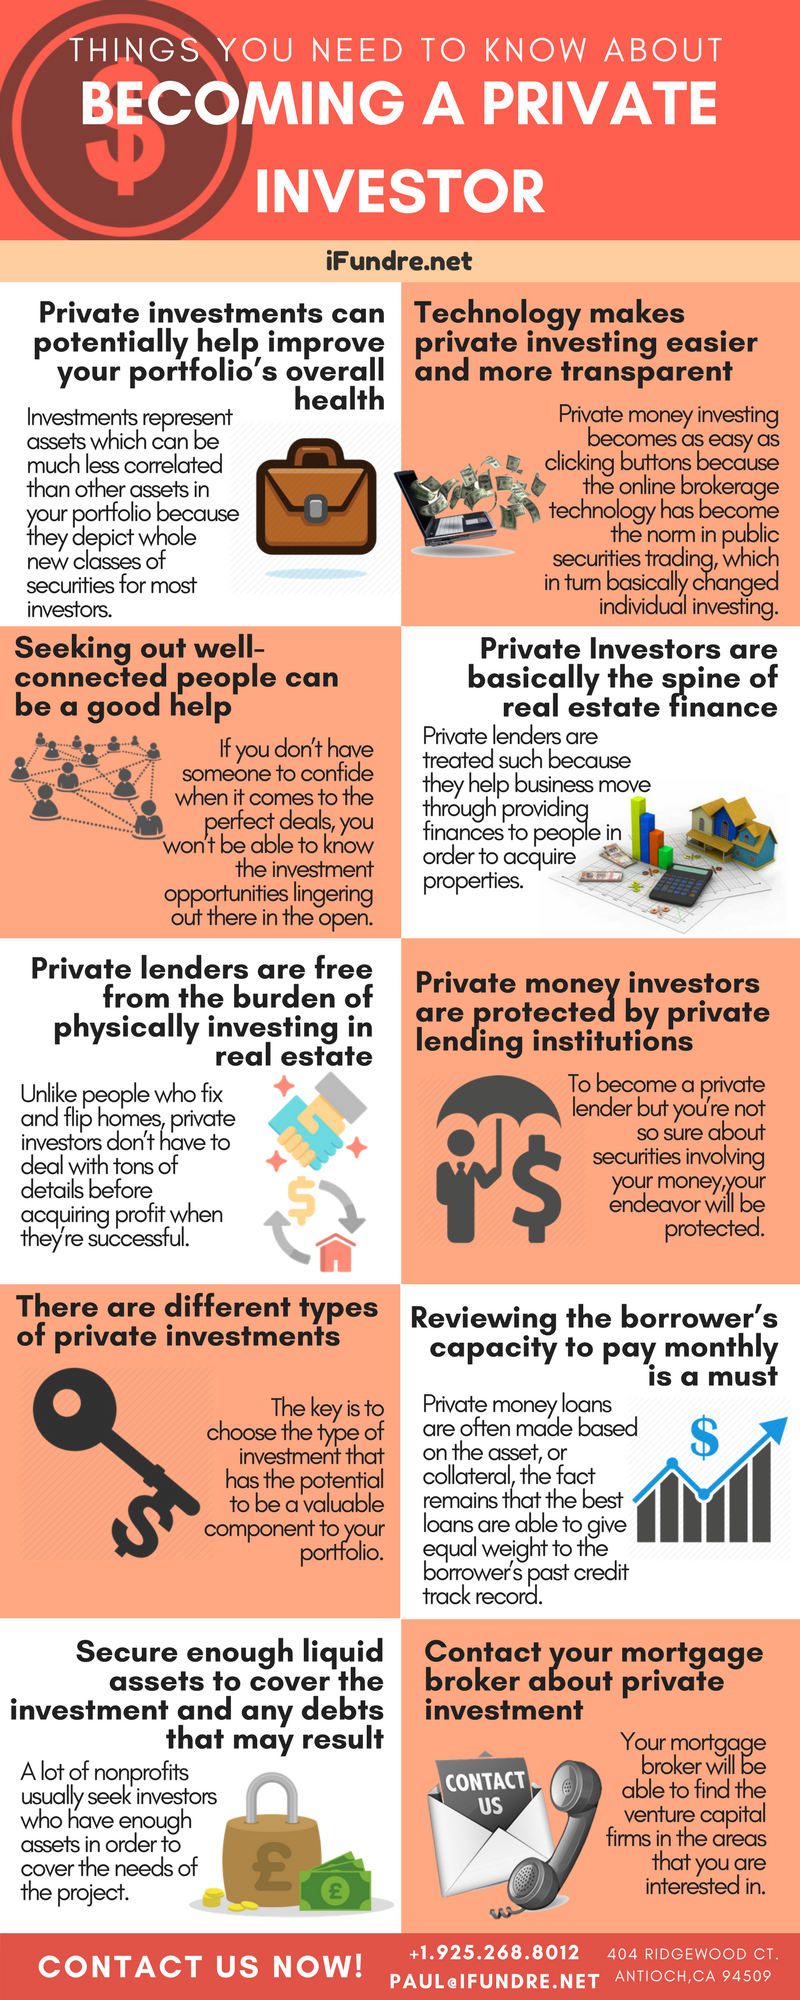 Becoming a Private Investor